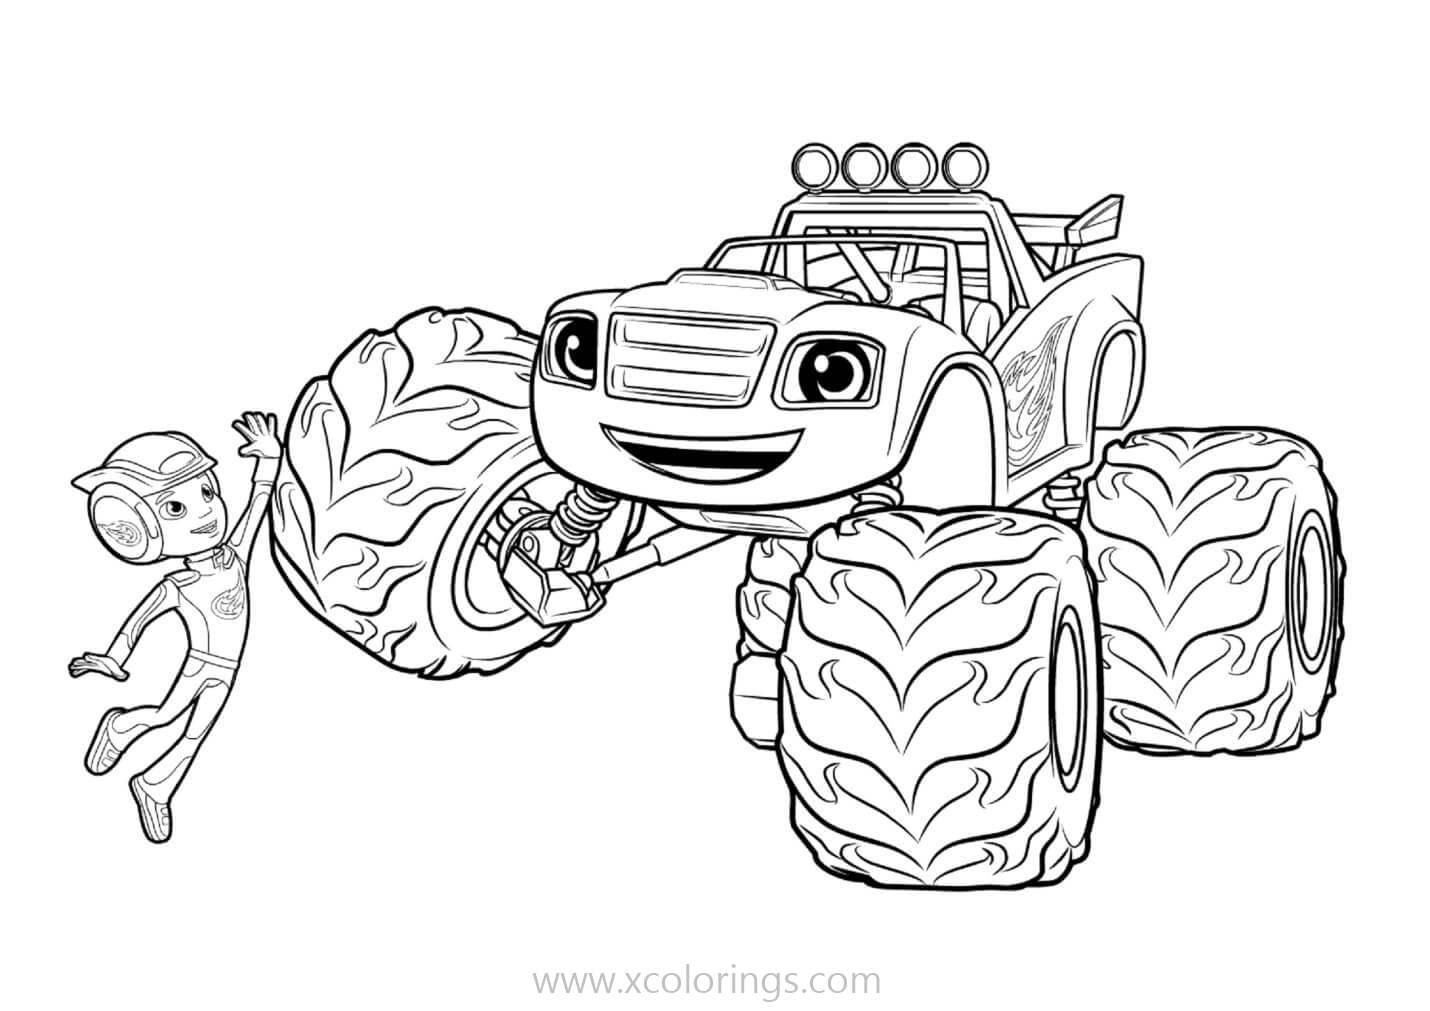 Blaze And The Monster Machines Coloring Pages Give Me Five Xcolorings Com